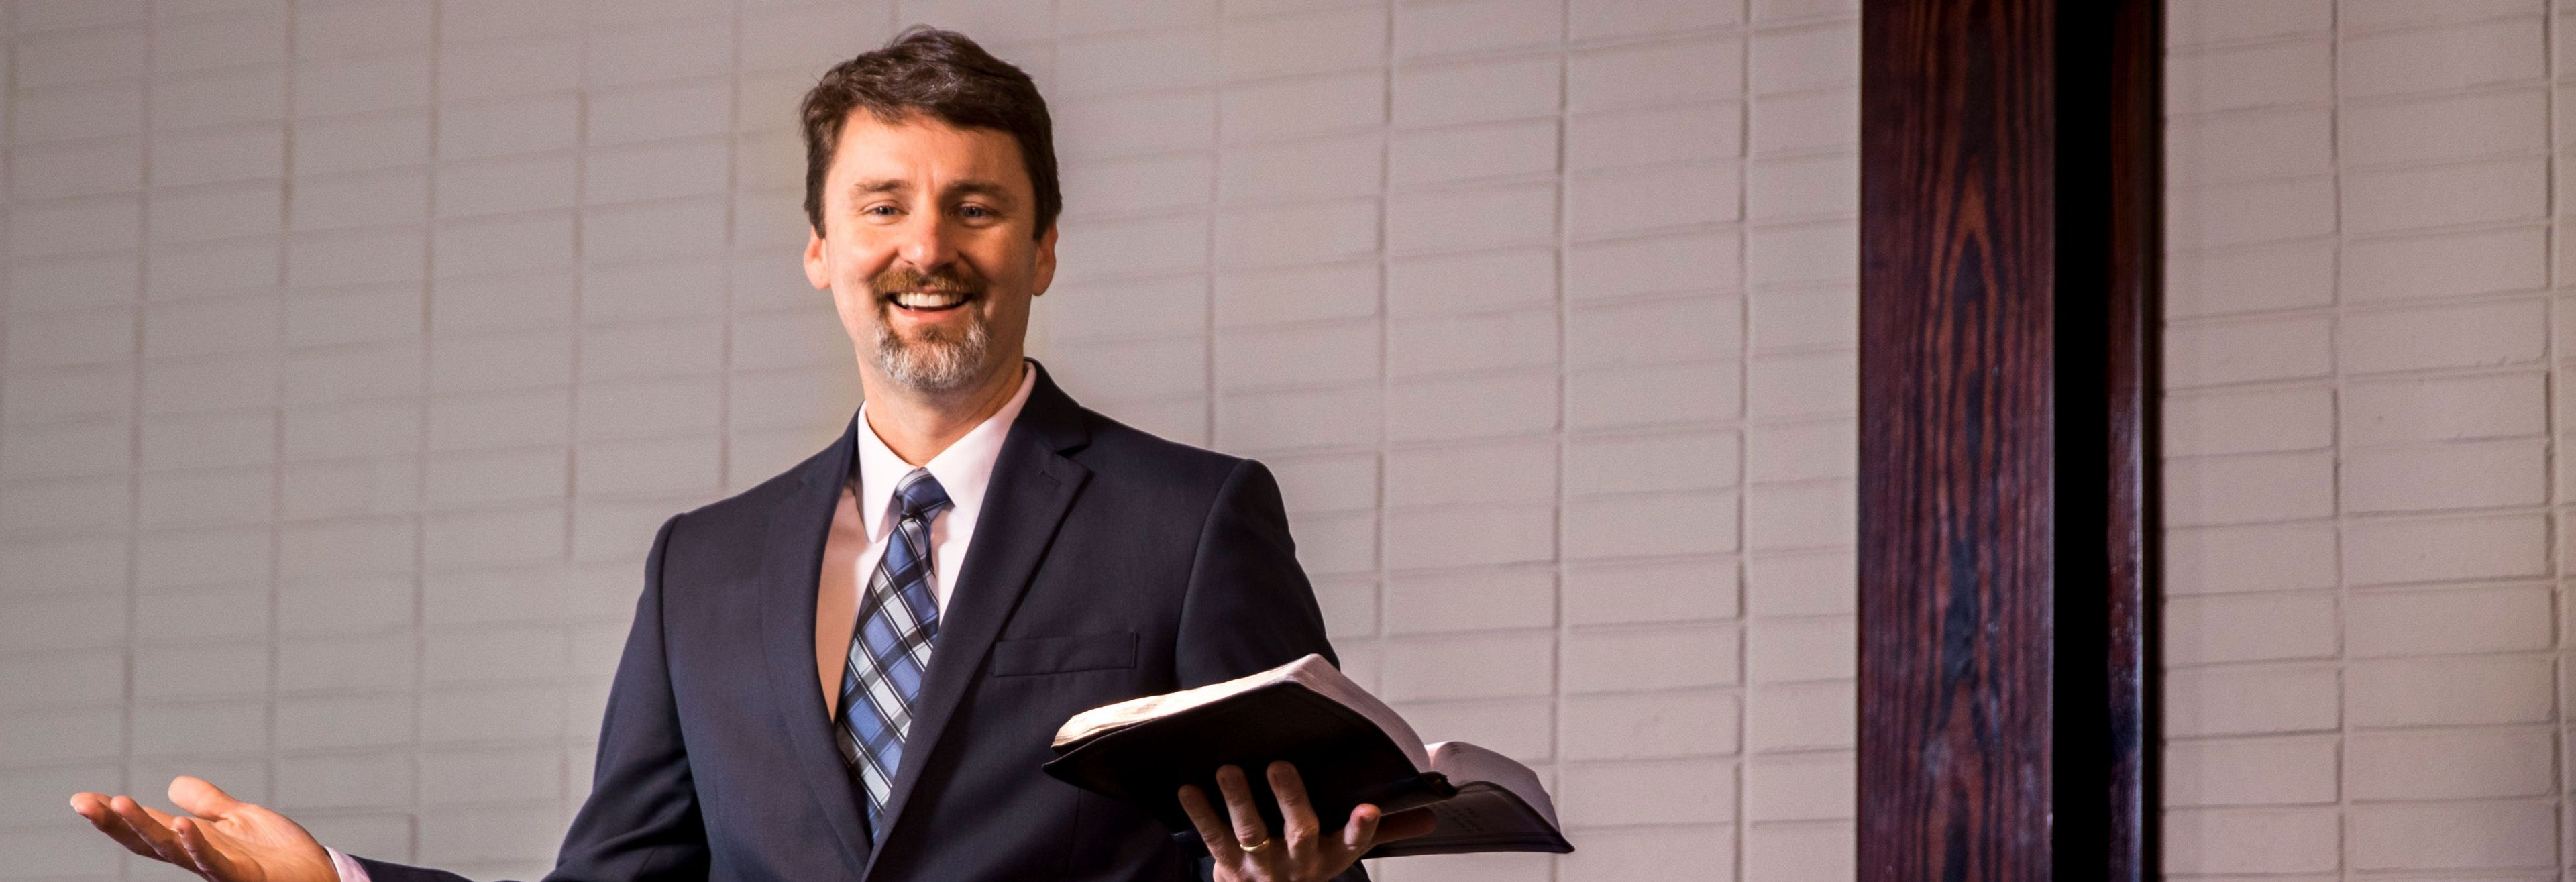 Doctor Of Ministry DMin Theology And Apologetics